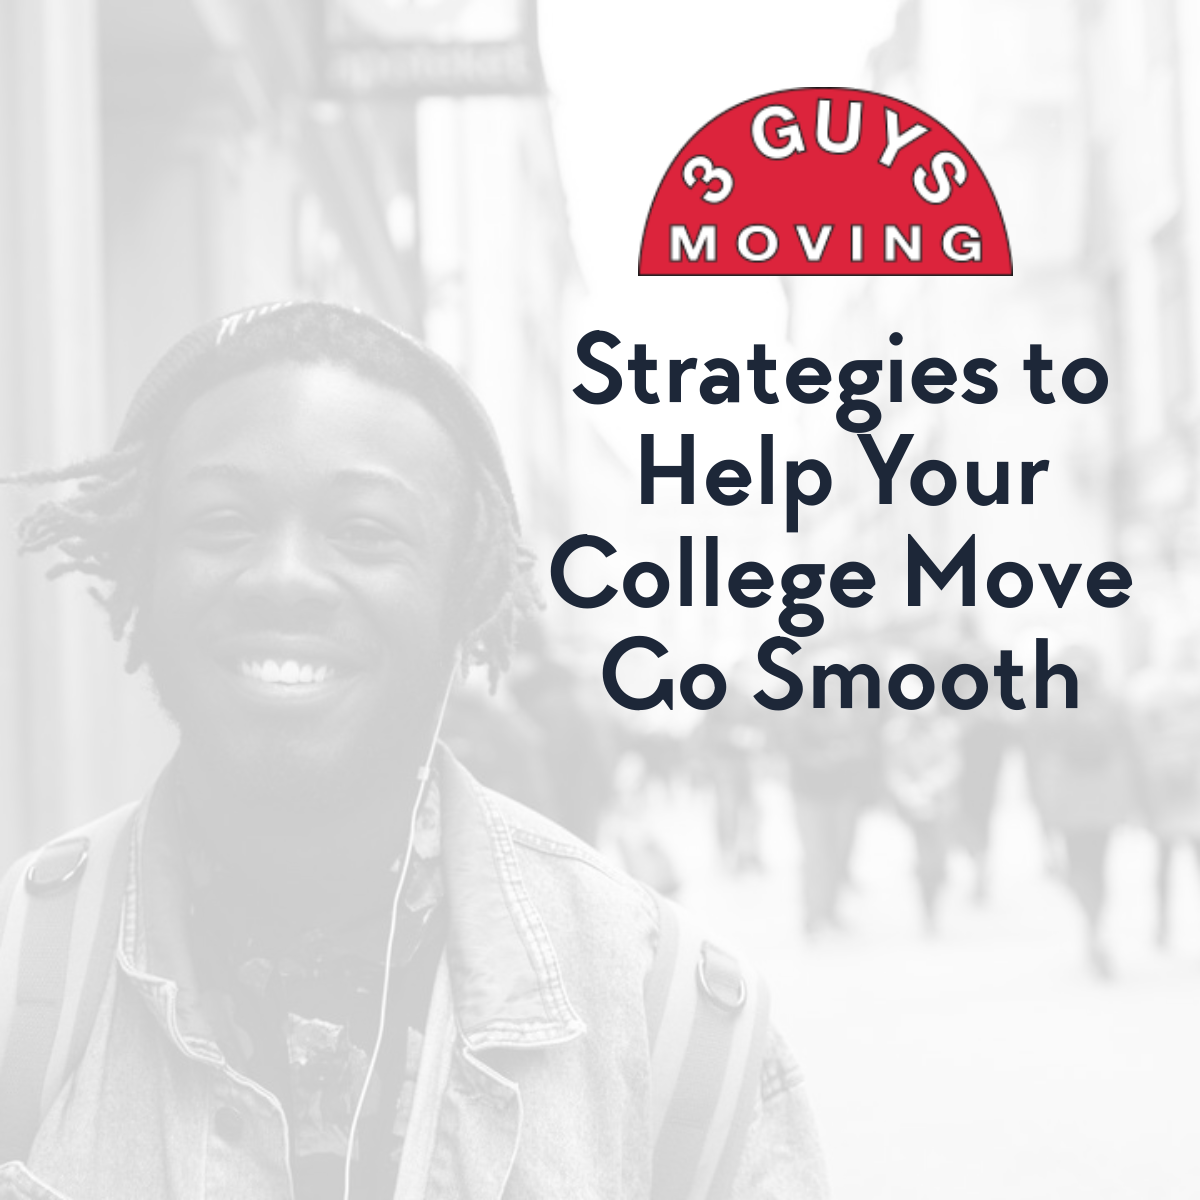 Strategies to Help Your College Move Go Smooth - Strategies to Help Your College Move Go Smooth